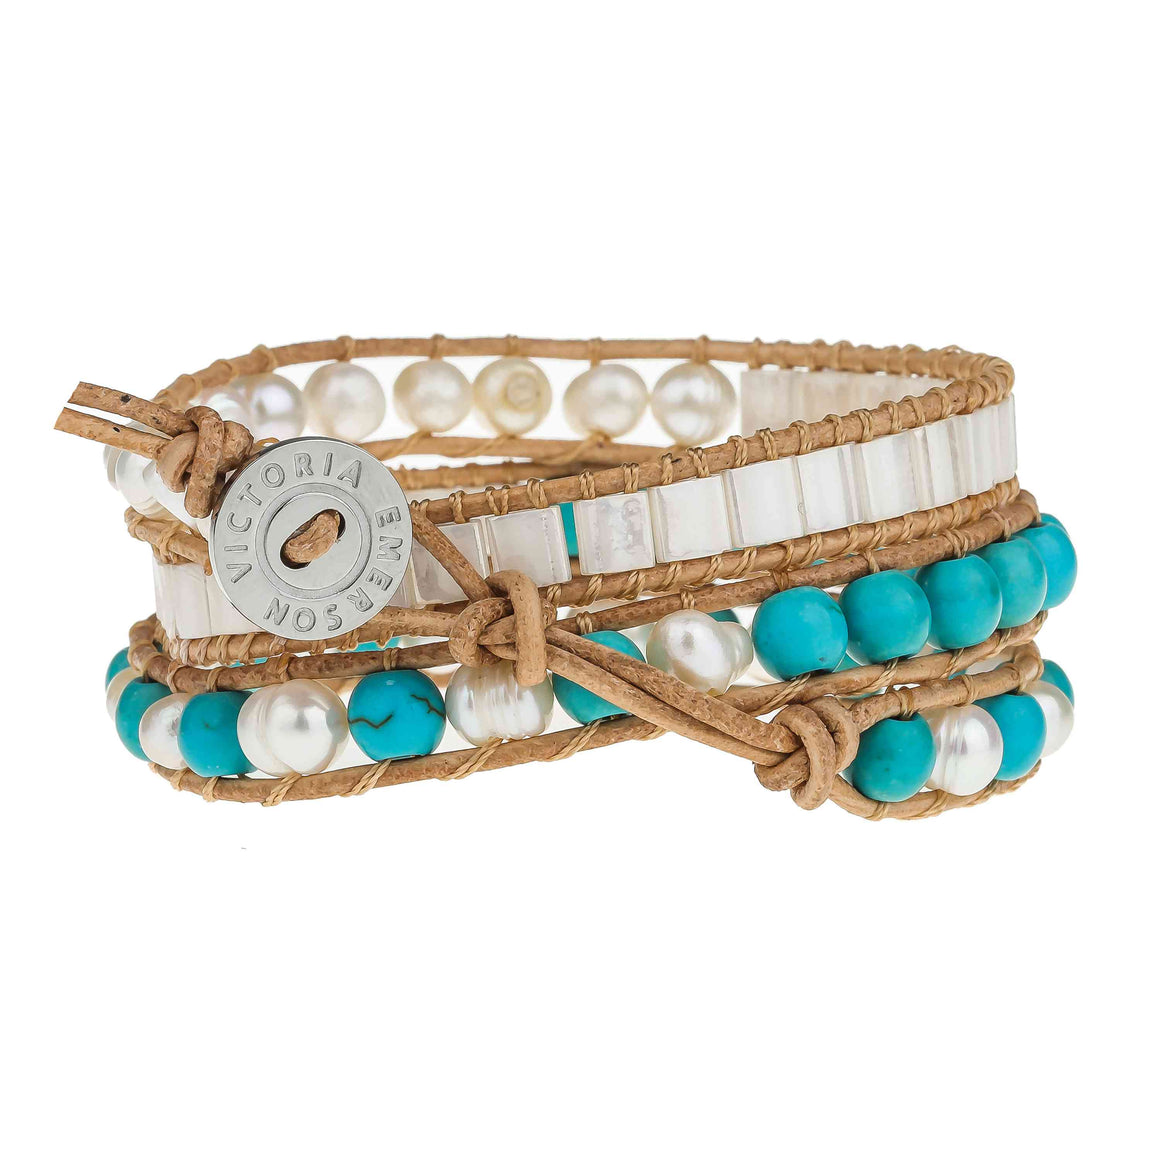 Freshwater Pearls and Turquoise on Natural